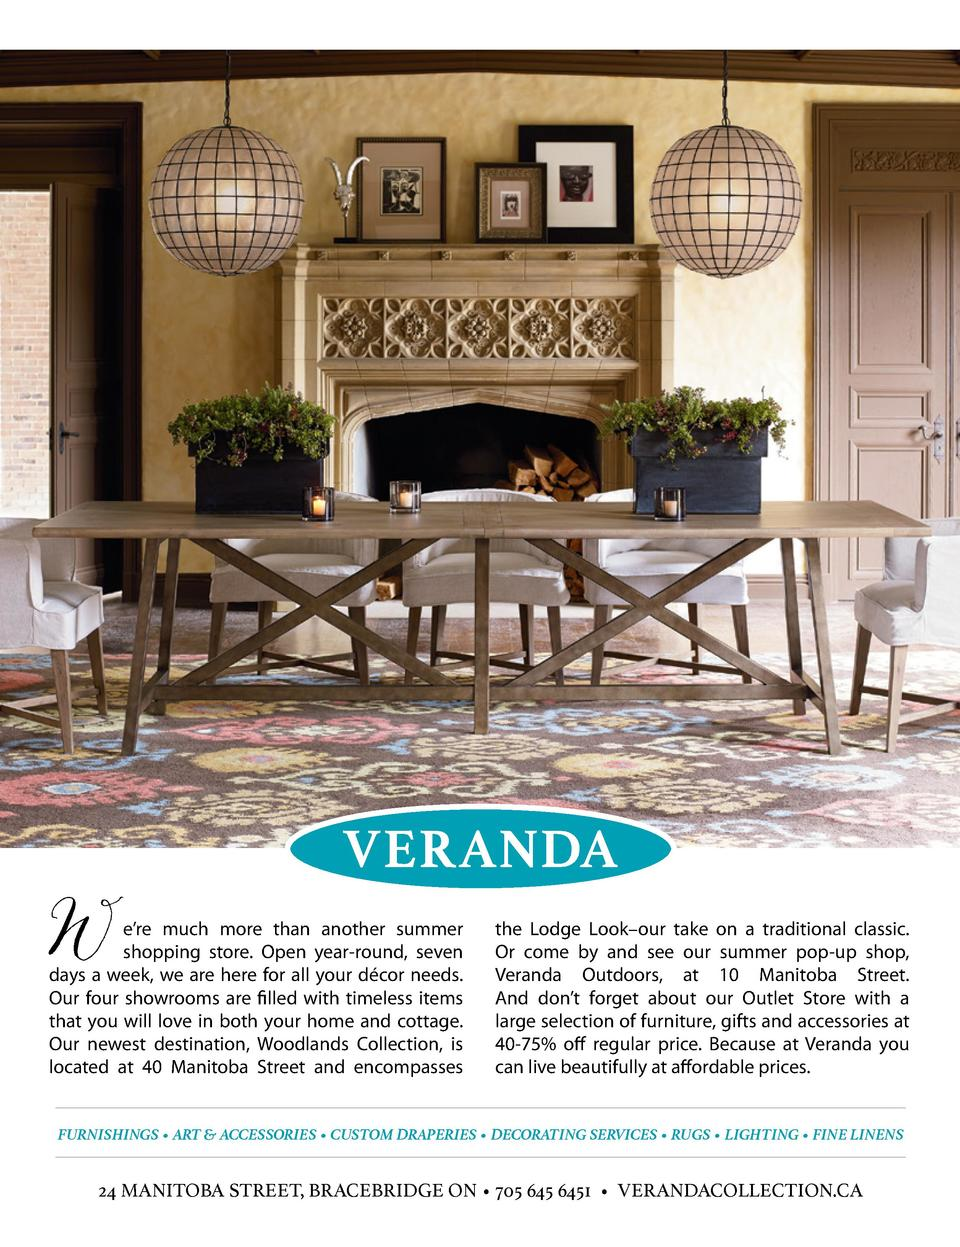 VERANDA  e   re much more than another summer shopping store. Open year-round, seven days a week, we are here for all your...